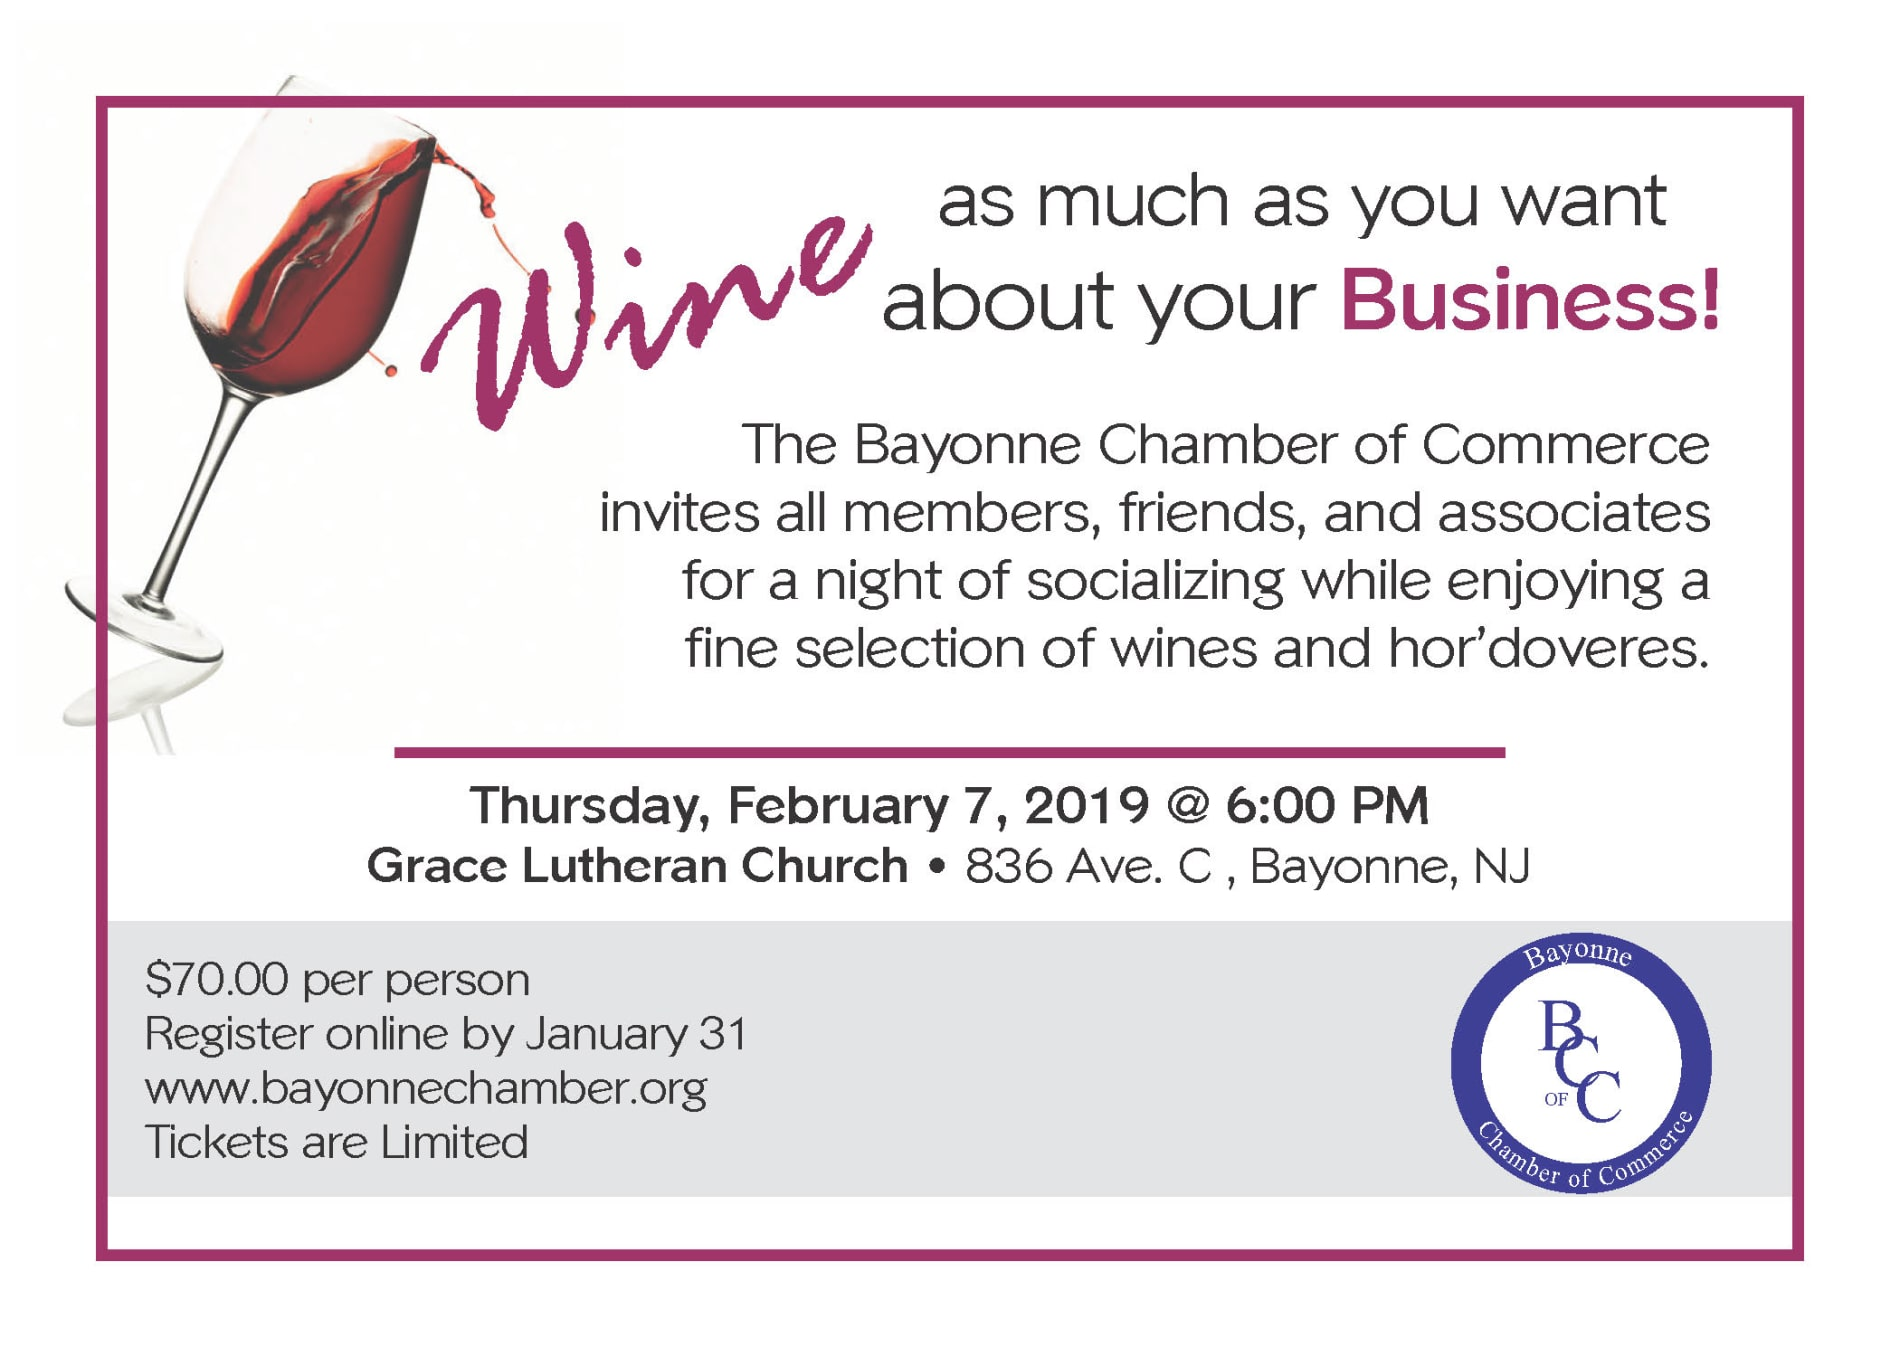 Wine for Bayonne business 2019